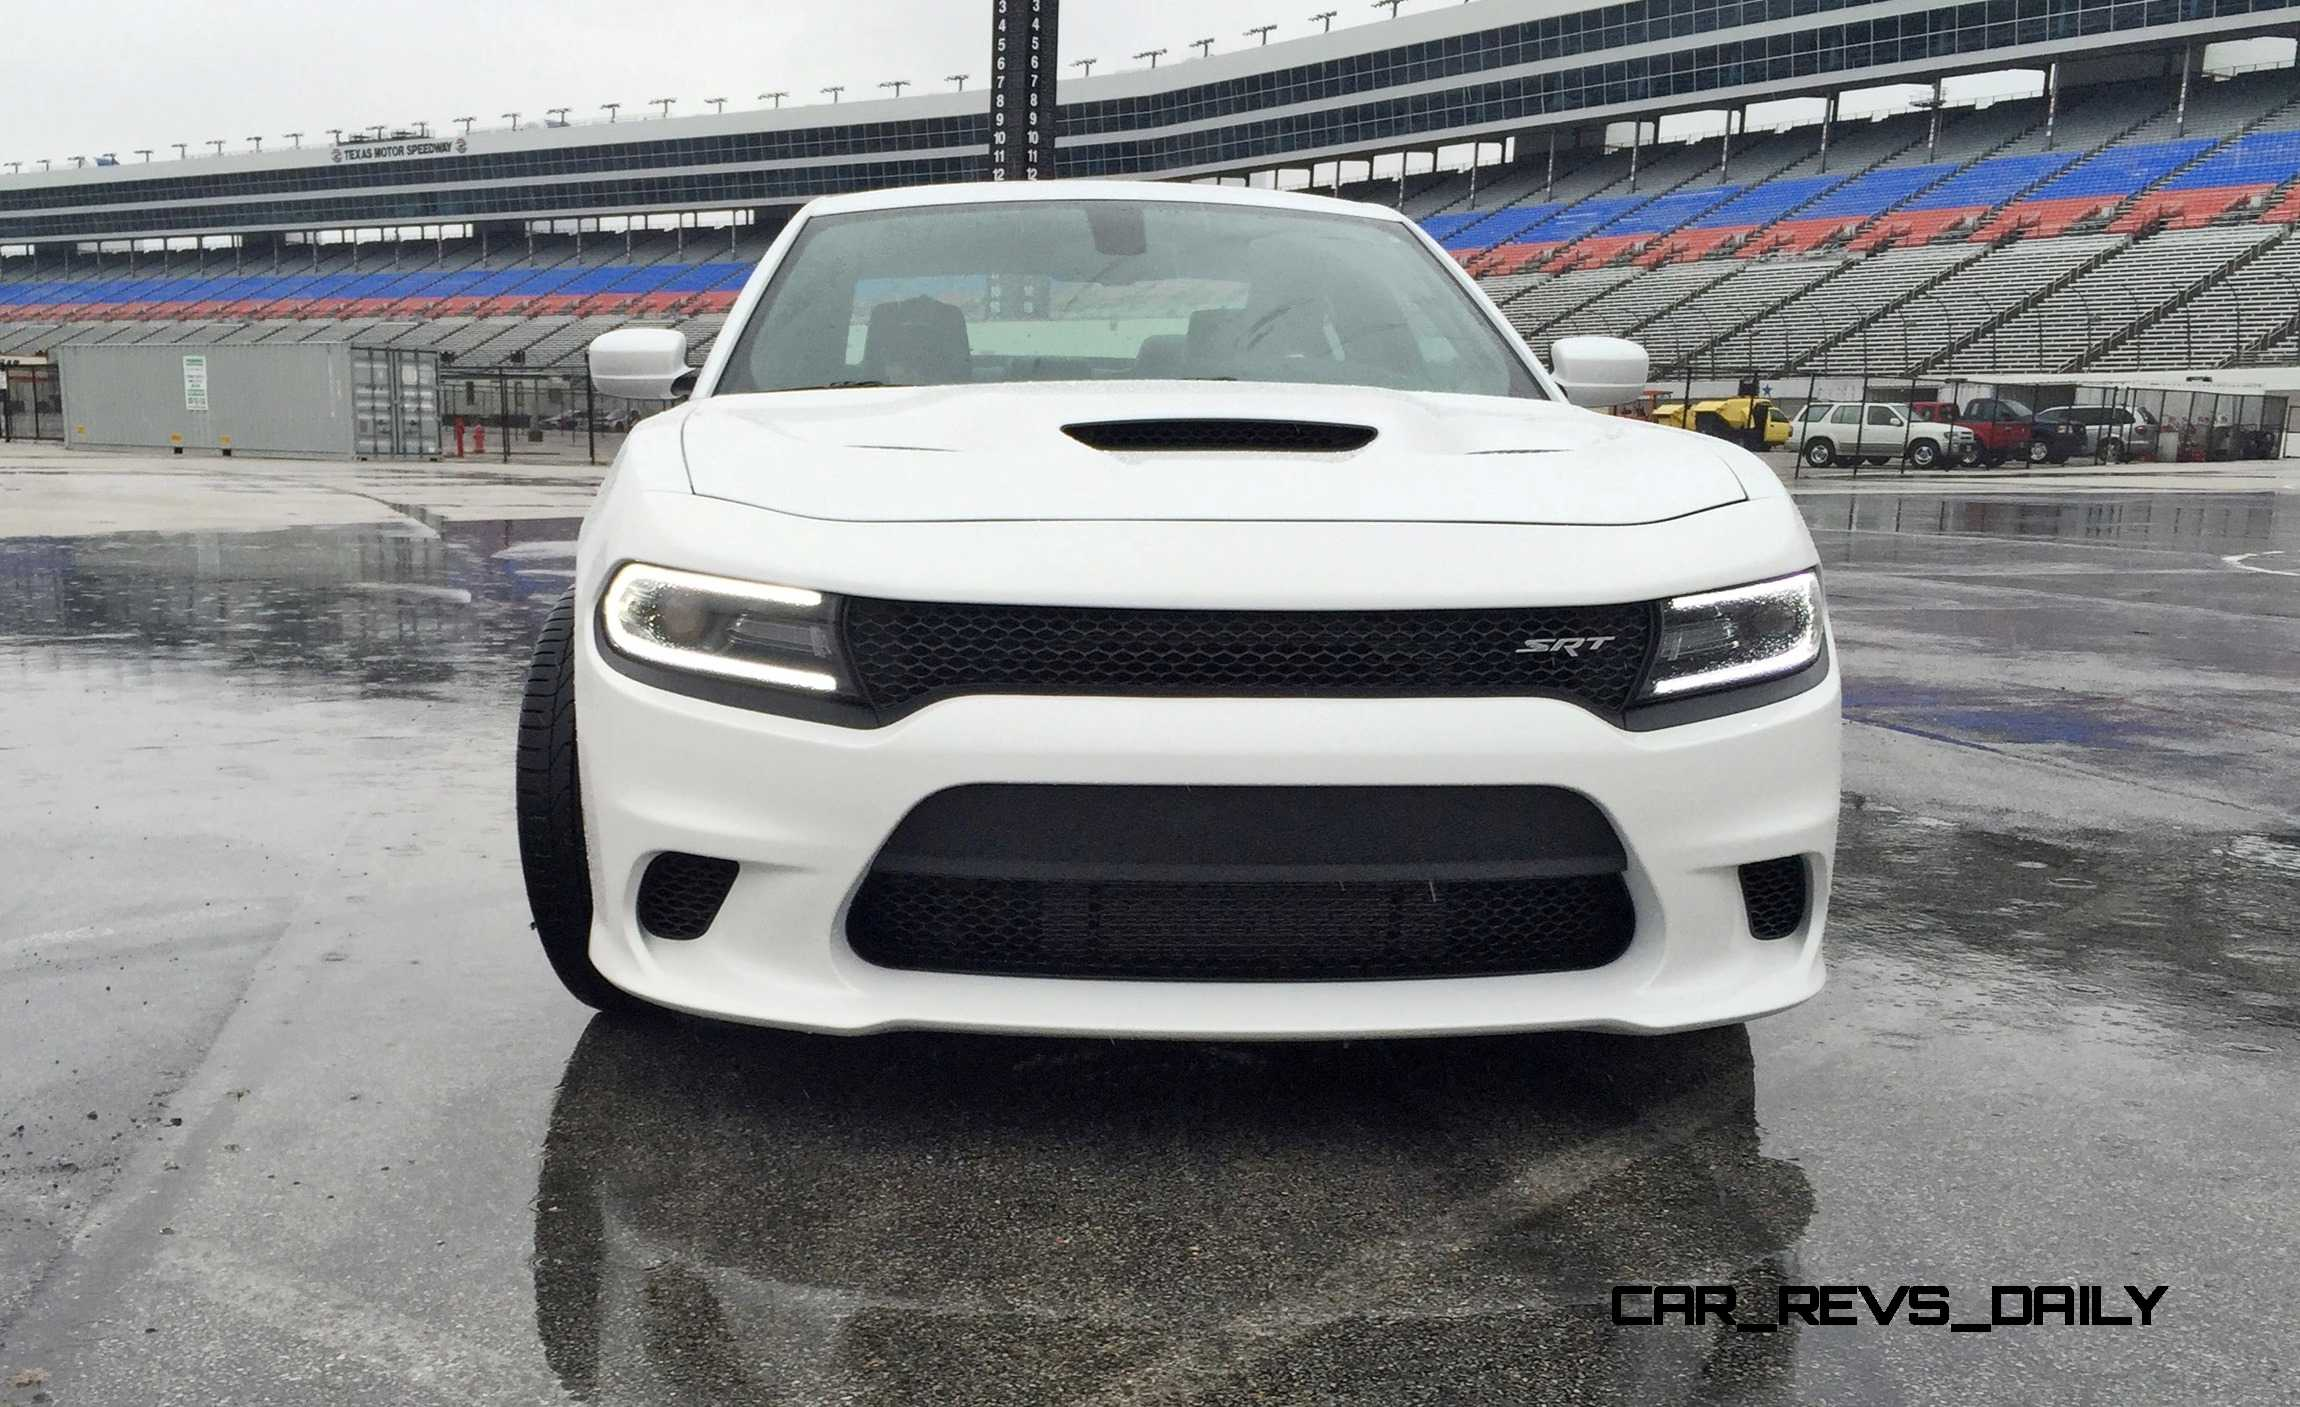 Fantastic 2015 Dodge Charger SRT HELLCAT Review